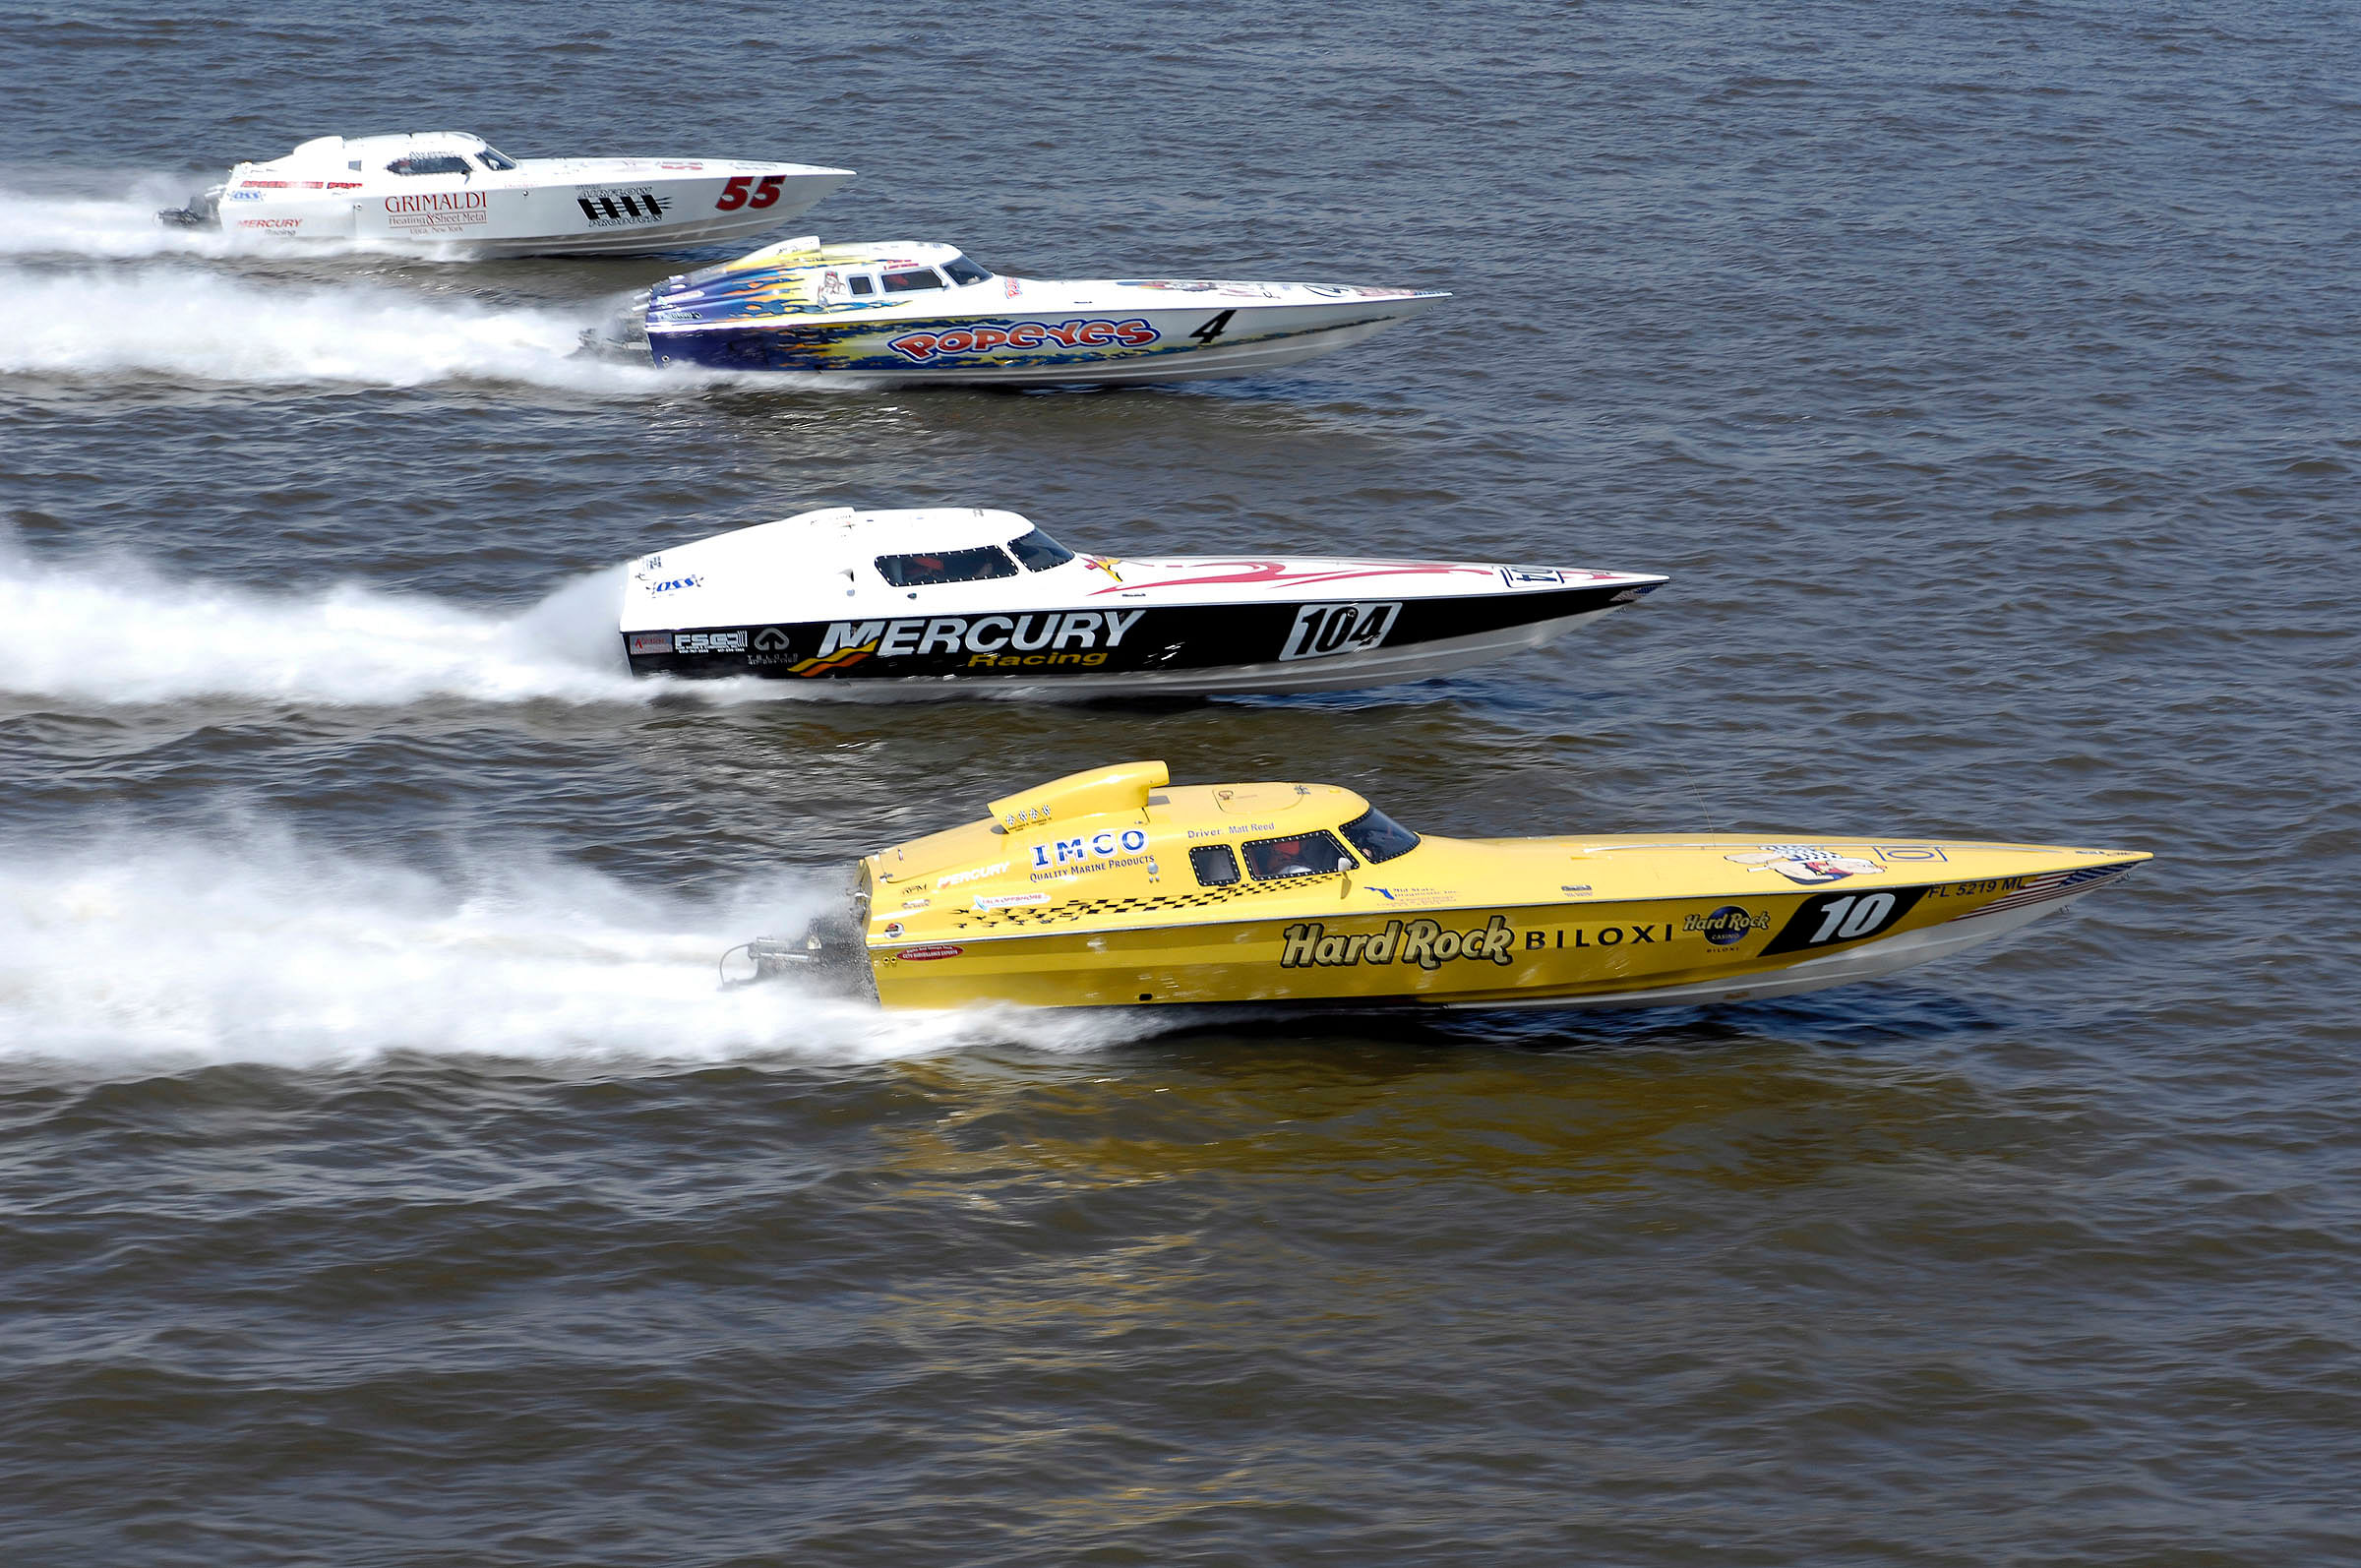 high performance rc boats with Most Dangerous Sports on Happy 20mothers 20day additionally H6 Boxer Engine besides Clipart Arrow 87 together with Rc 44 as well Airboat For Sale How To Randkey.